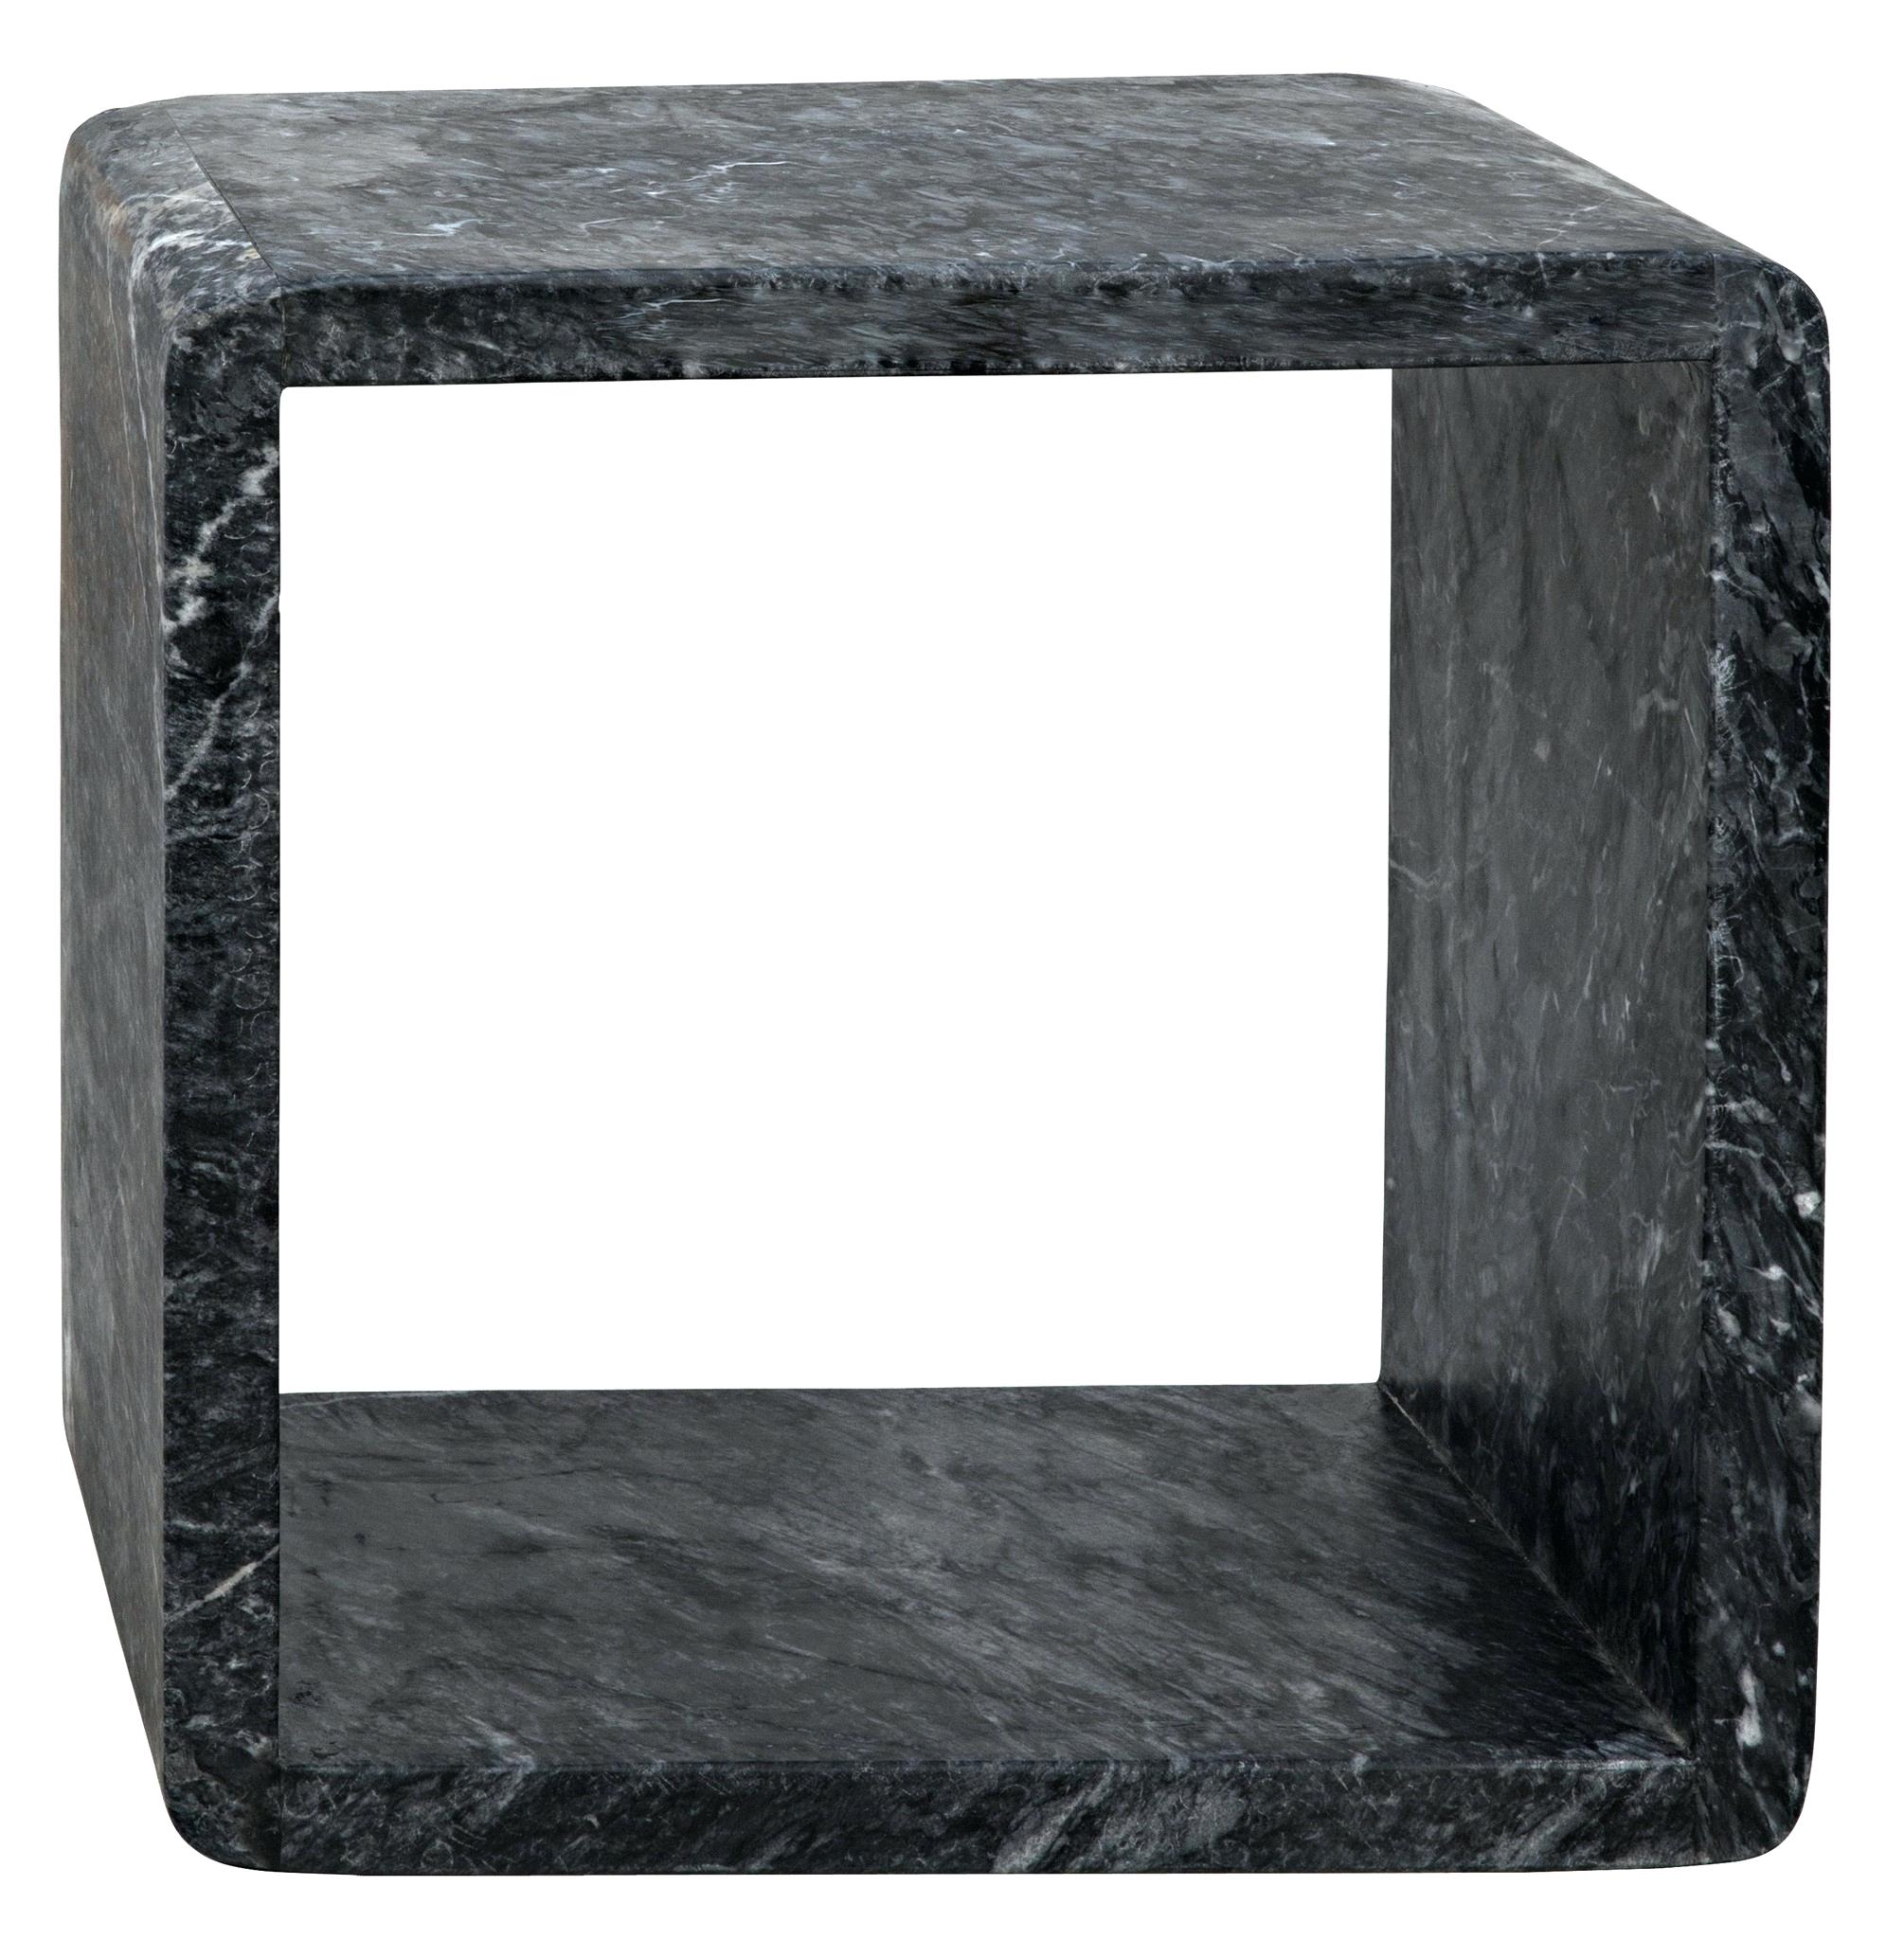 small black accent table the home ideas foundation side marble metal square art lamps outdoor coffee with ice bucket ikea desk west elm dishes plastic mango bookcase half moon